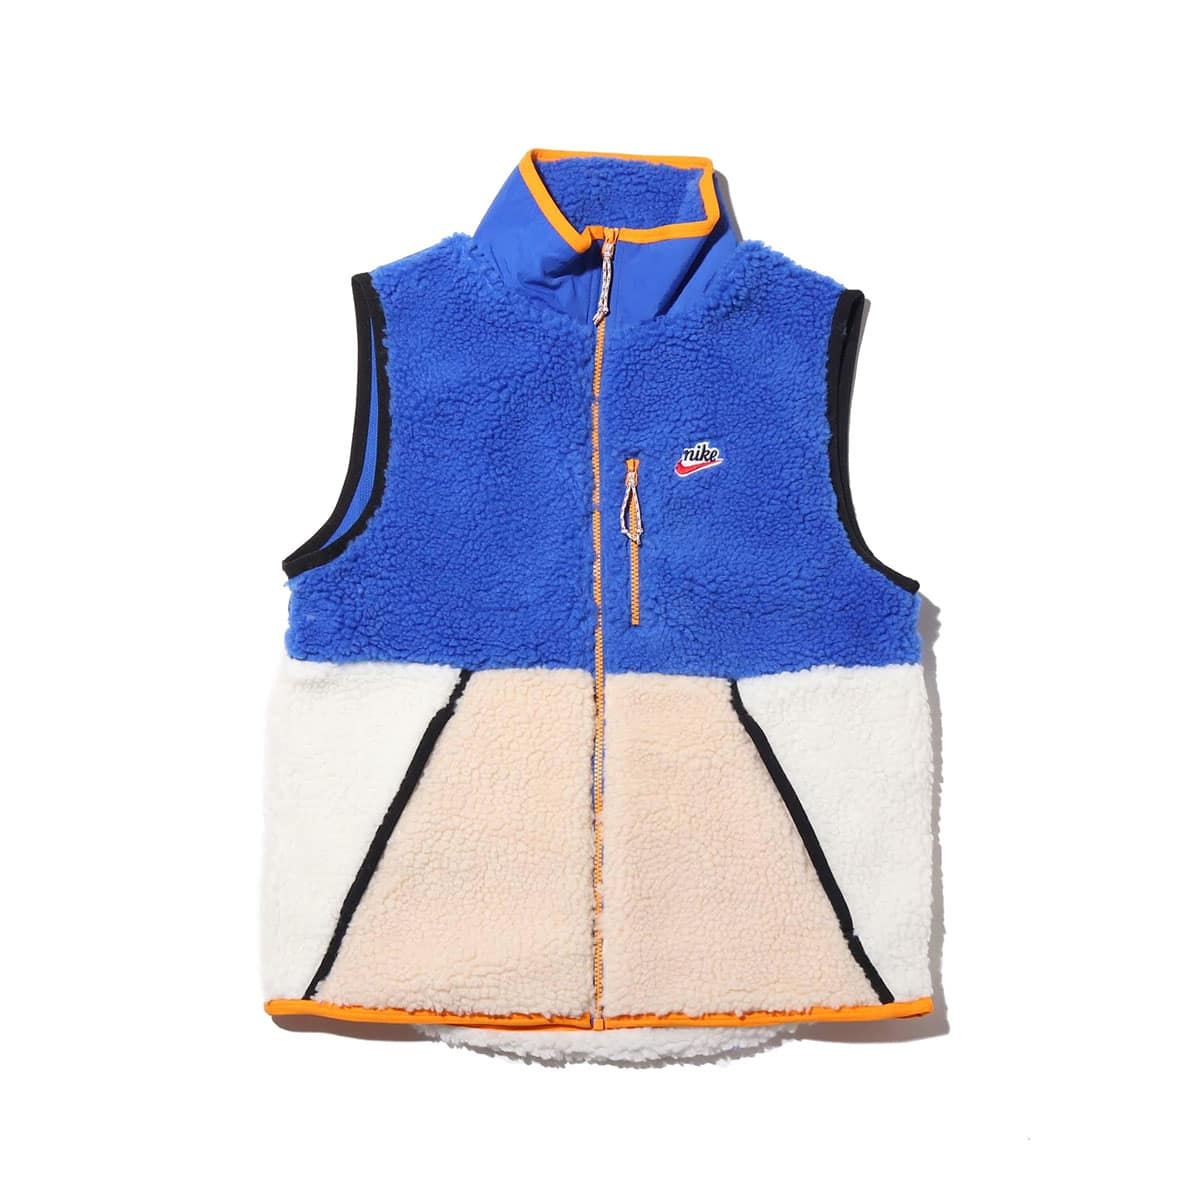 NIKE AS M NSW HE VEST WINTER GAME ROYAL/DESERT SAND/SAIL 19HO-S_photo_large